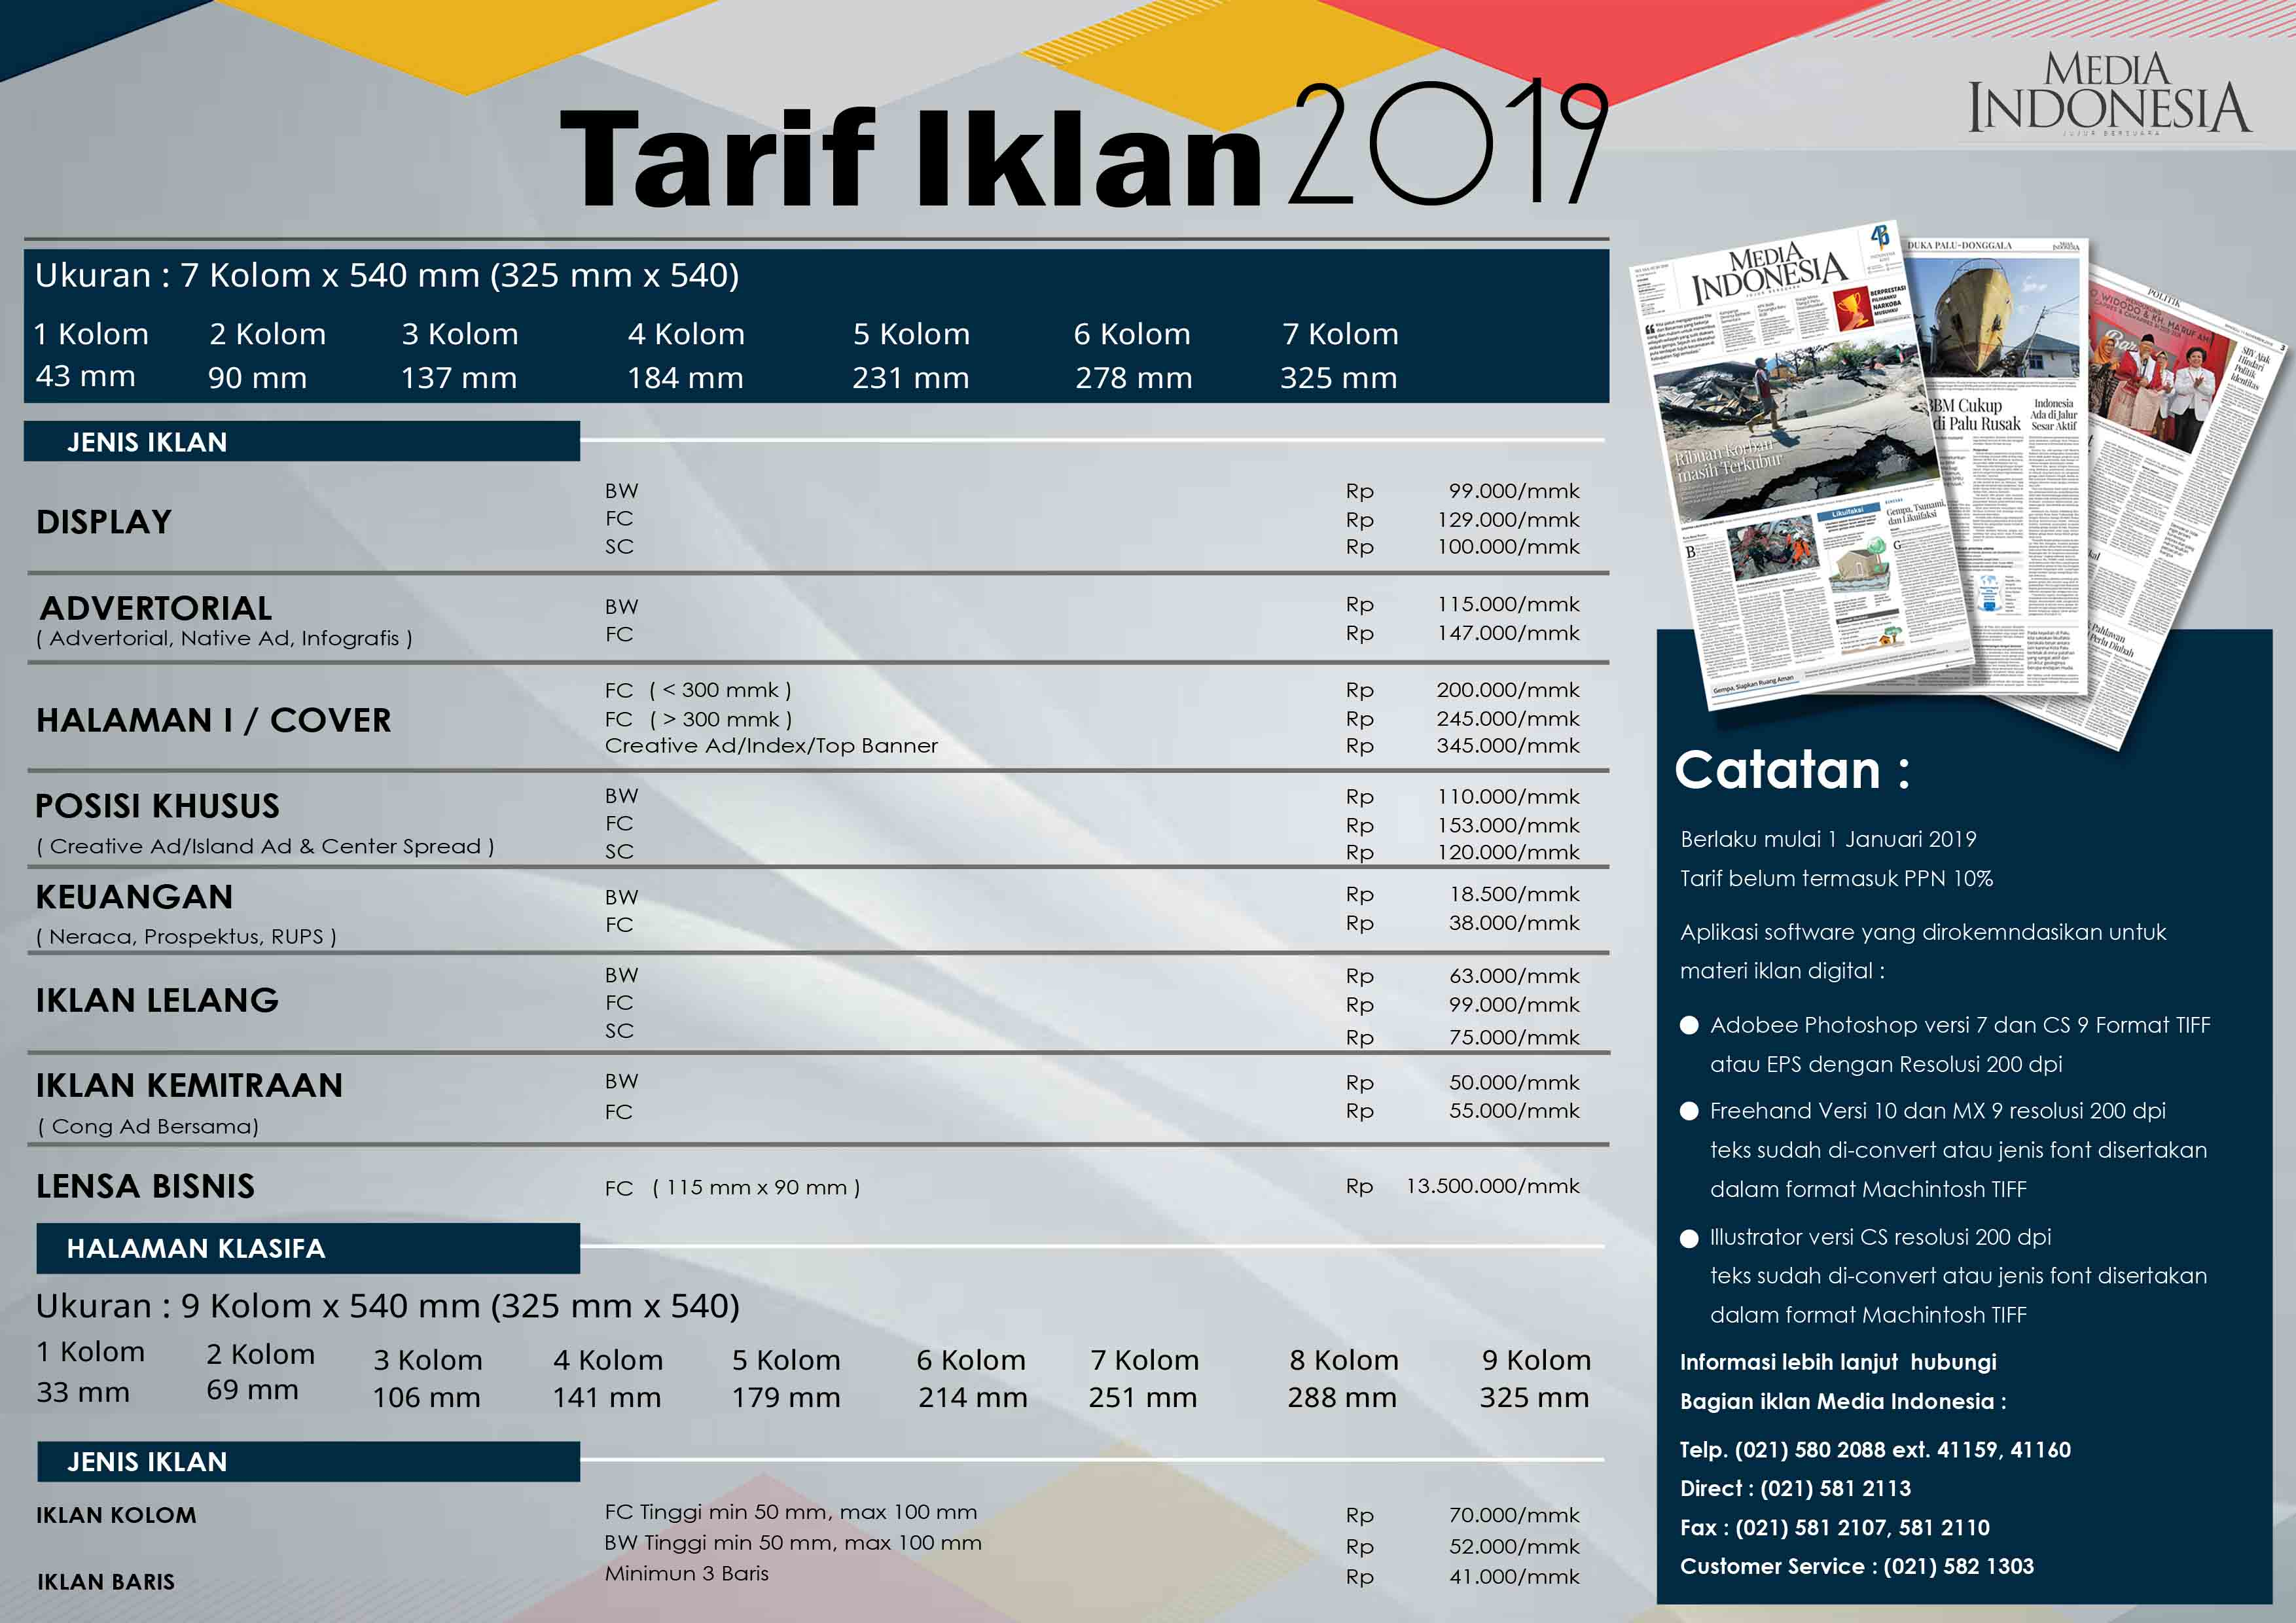 Rate Card Koran